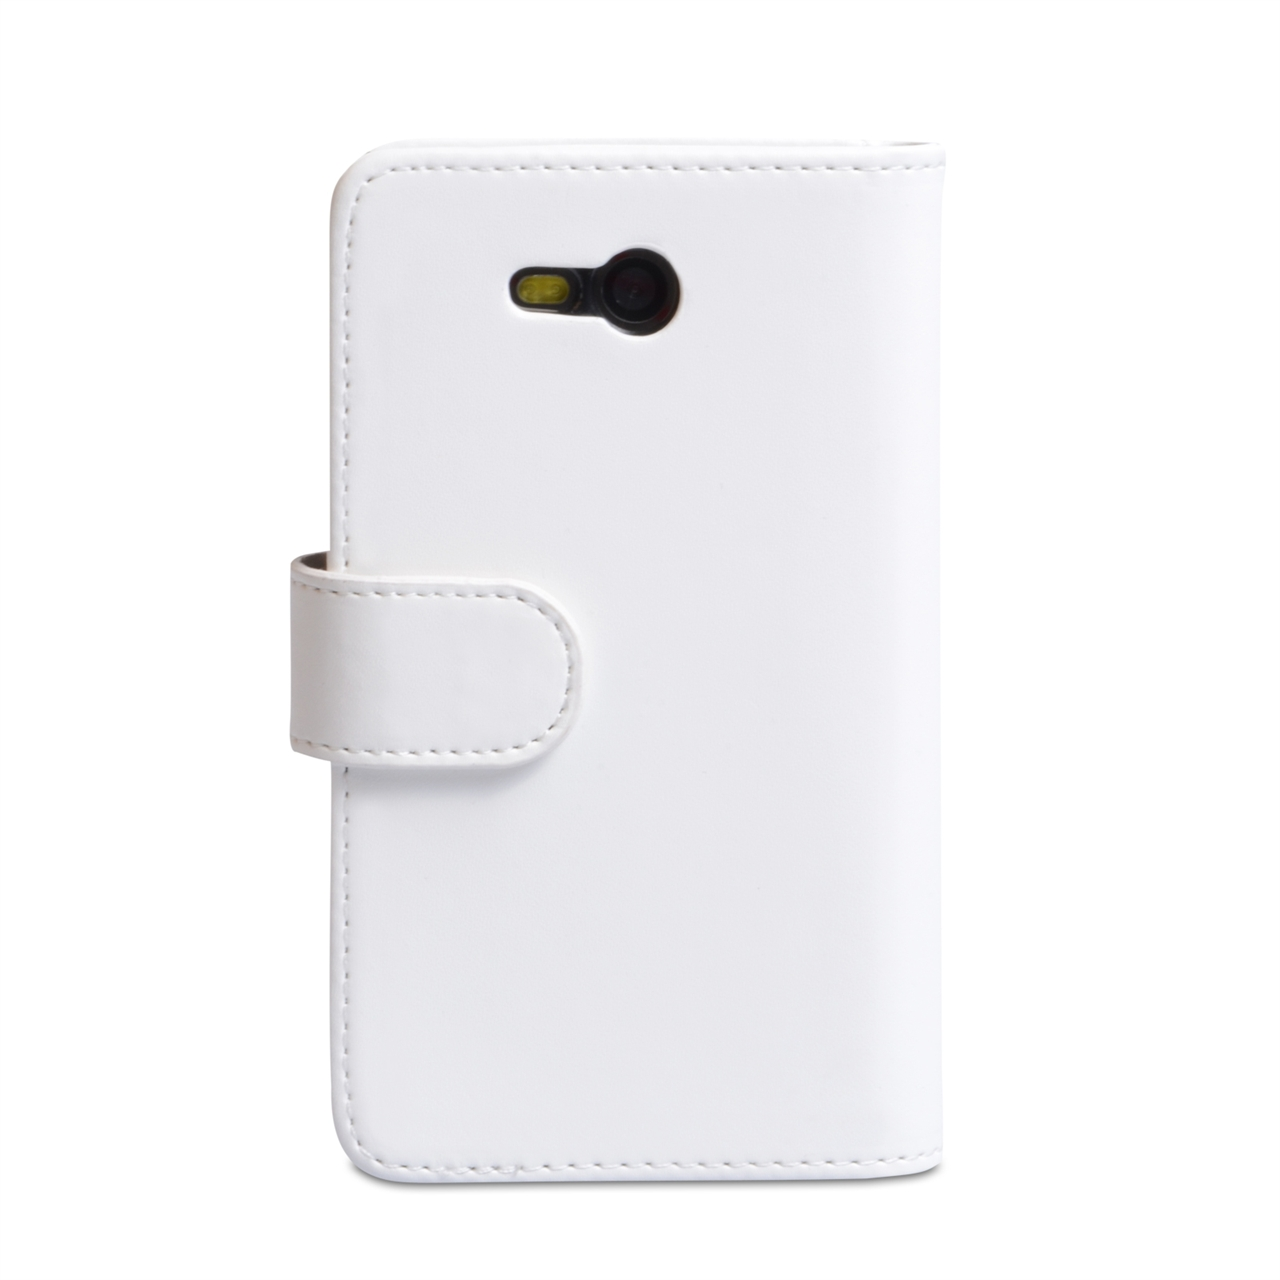 YouSave Accessories Nokia Lumia 820 Leather Effect Wallet Case - White